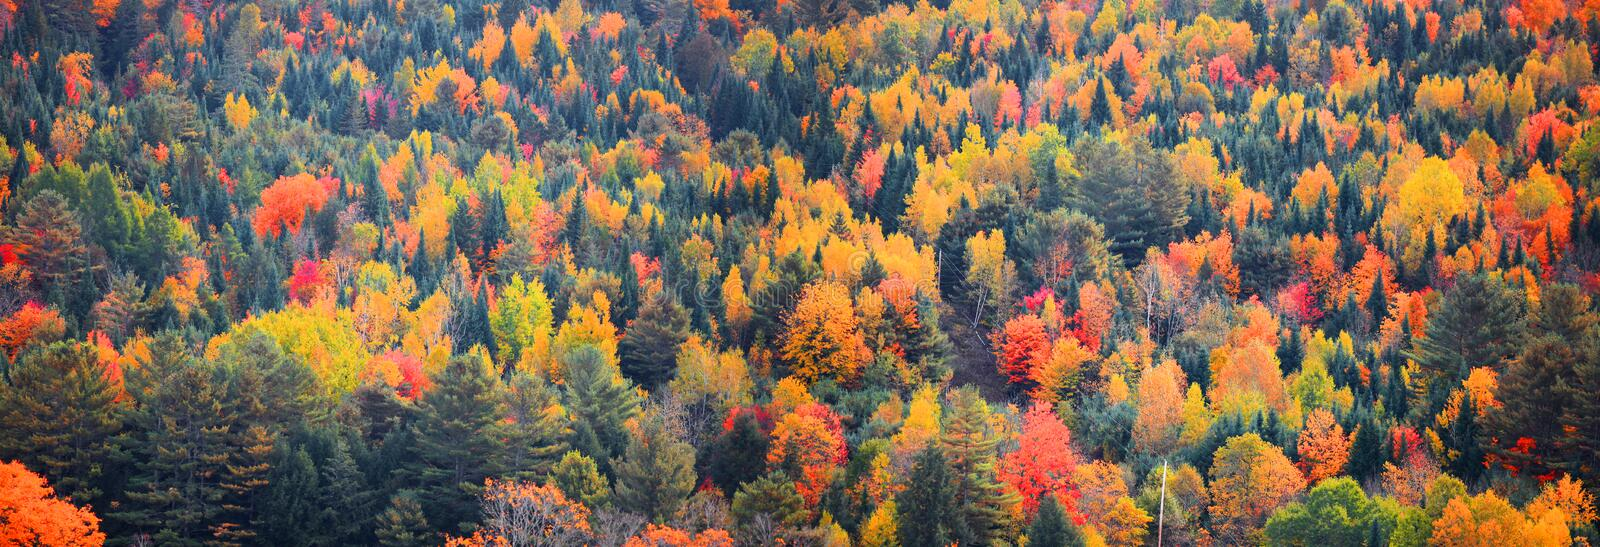 Canopy of Autumn trees in Rural Vermont royalty free stock photography